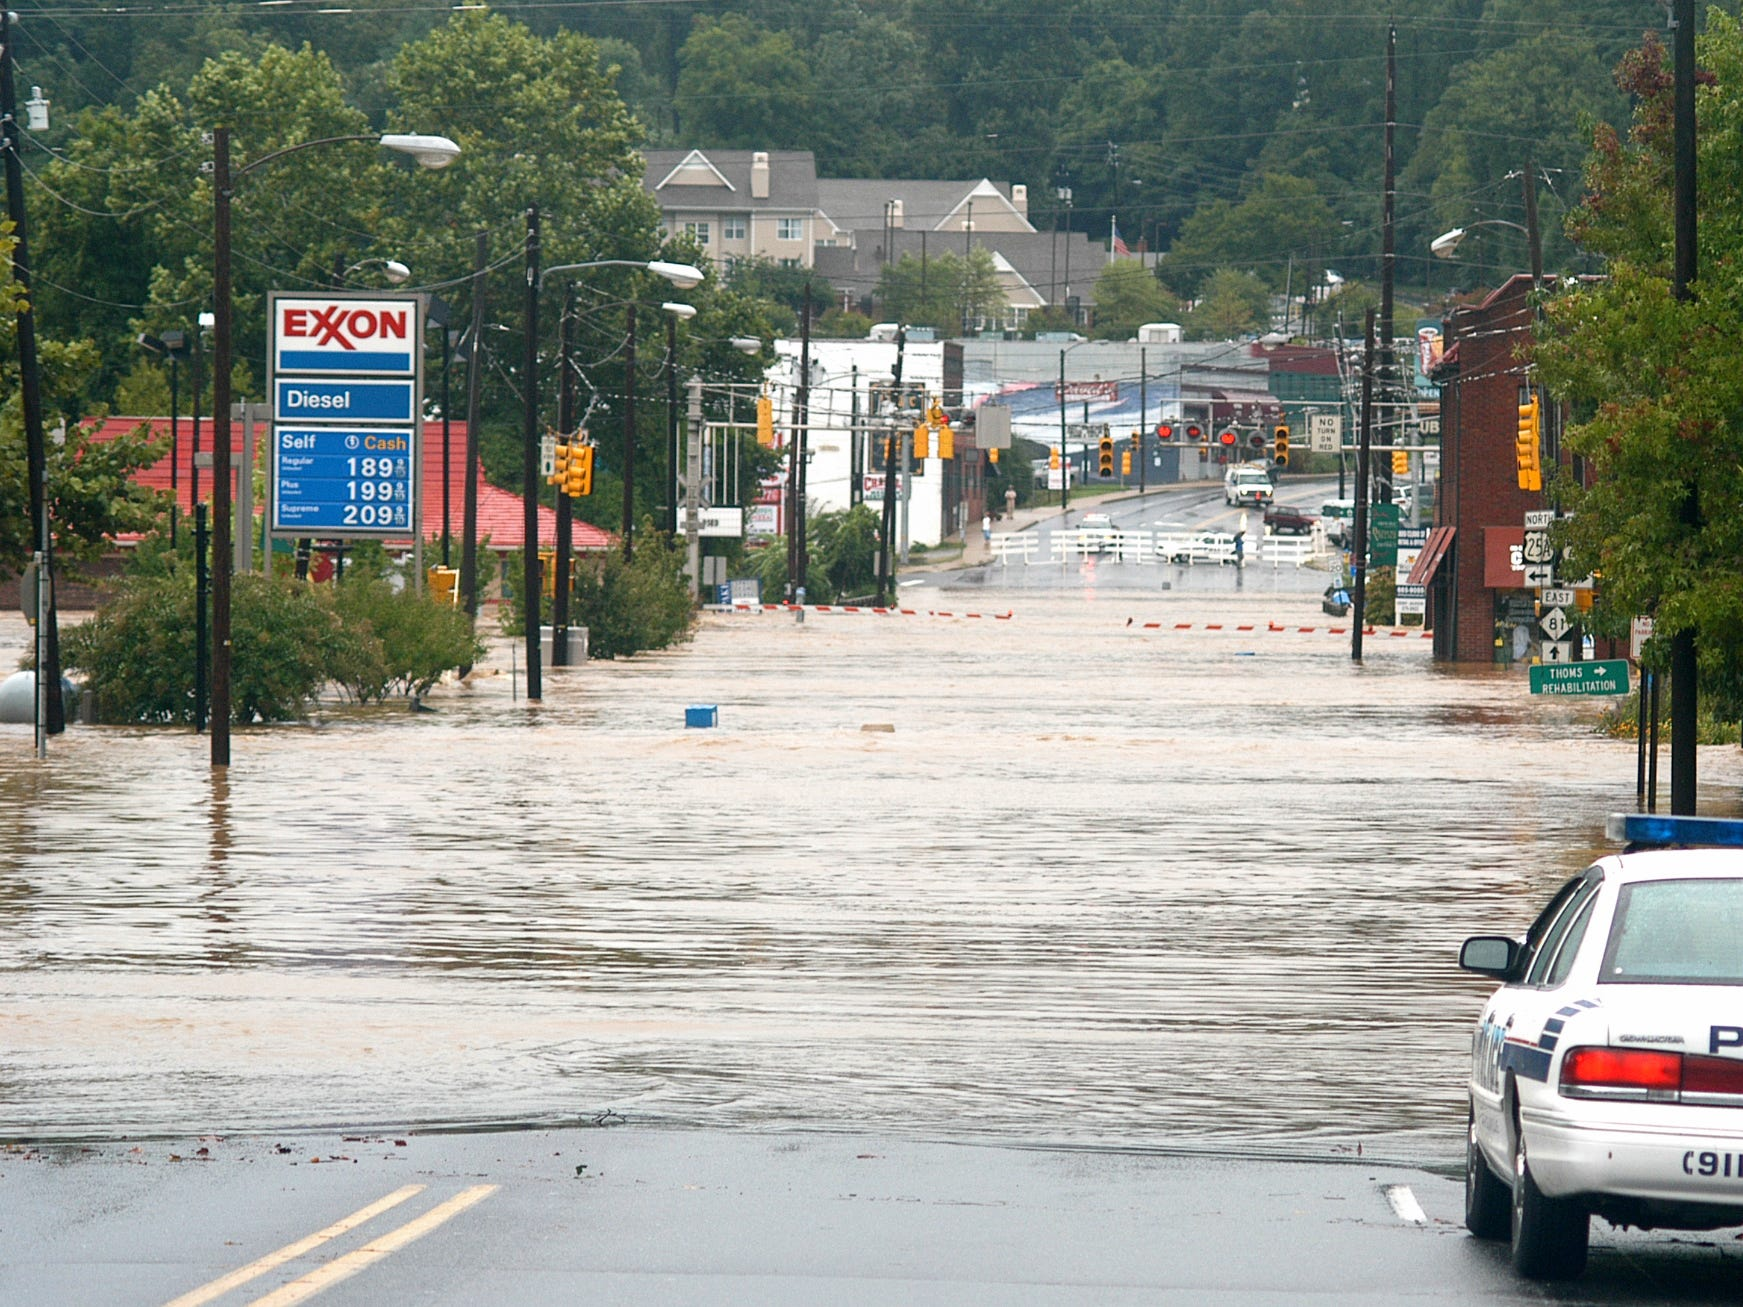 Police guard flooded Biltmore Avenue in Biltmore Village after the Swannanoa River overflowed its banks and flooded the area on Sept. 8, 2004. Heavy rain from Hurricane Frances flooded many areas of WNC.